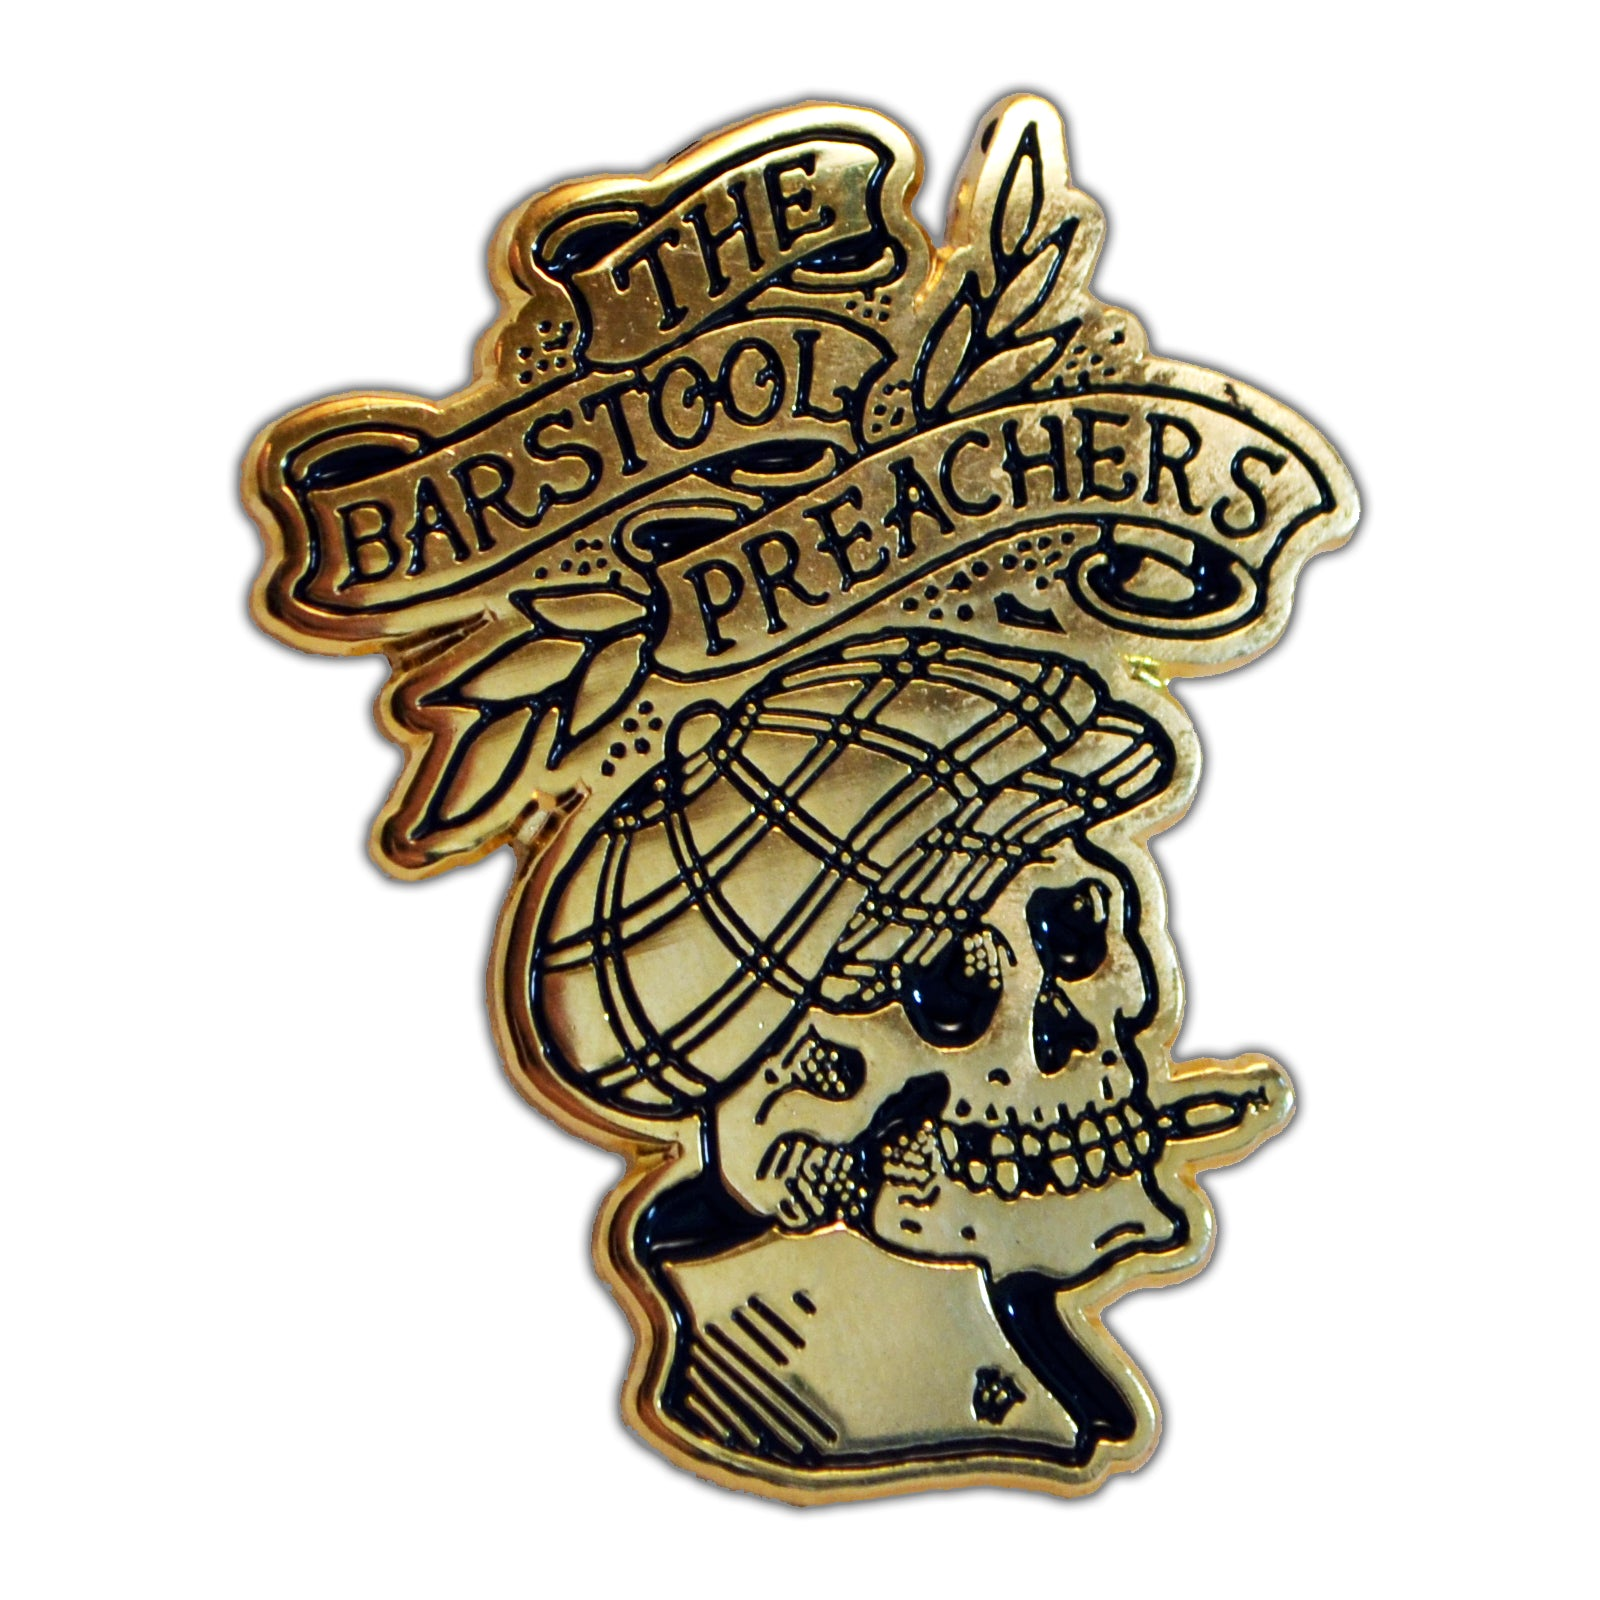 "The Bar Stool Preachers - Skull Logo - 1.5"" Enamel Pin"